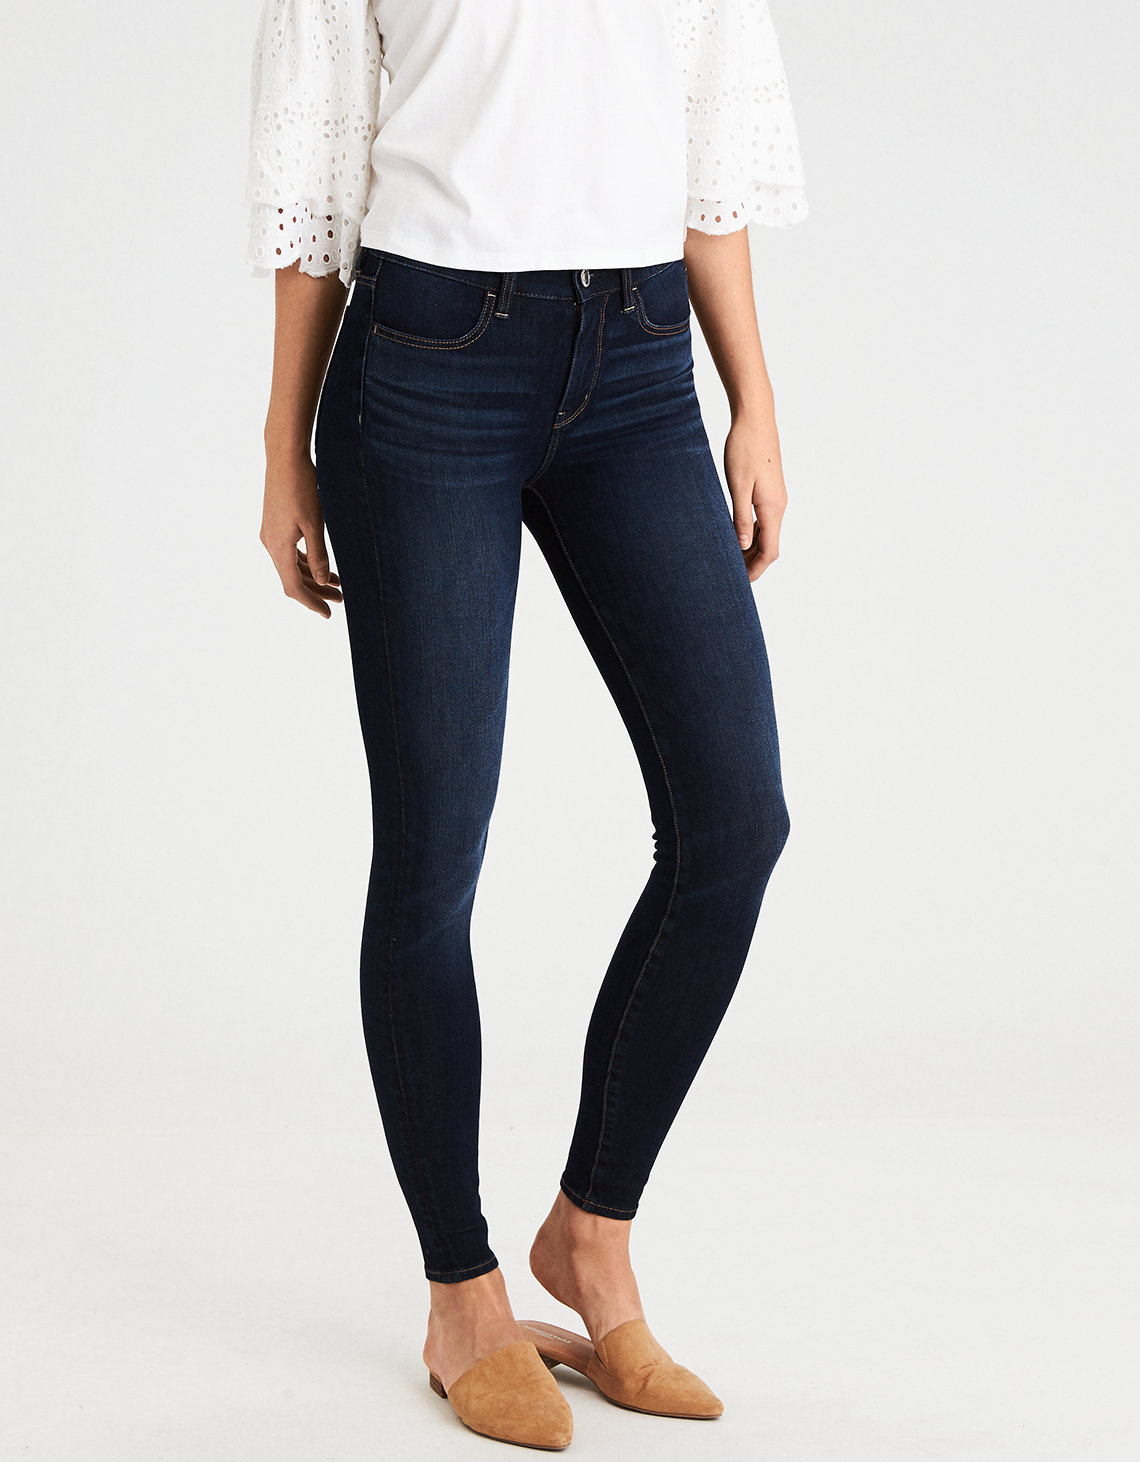 c353155159b0ea The Dream Jean High-Waisted Jegging